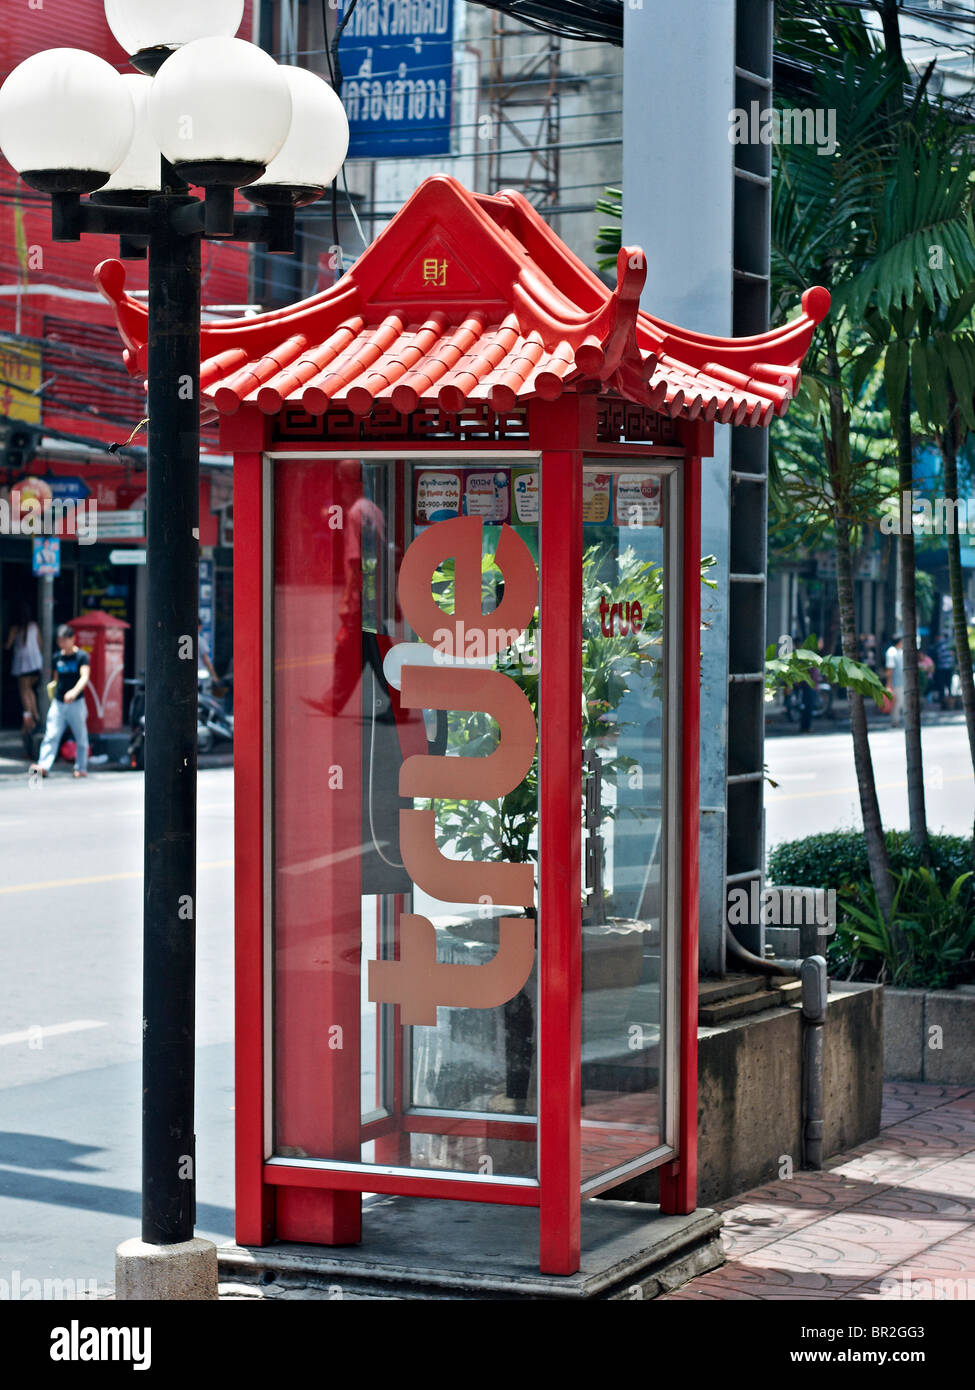 Chinese styled red telephone kiosk and accompanying decorative lantern in Bangkok's China Town district. Thailand - Stock Image